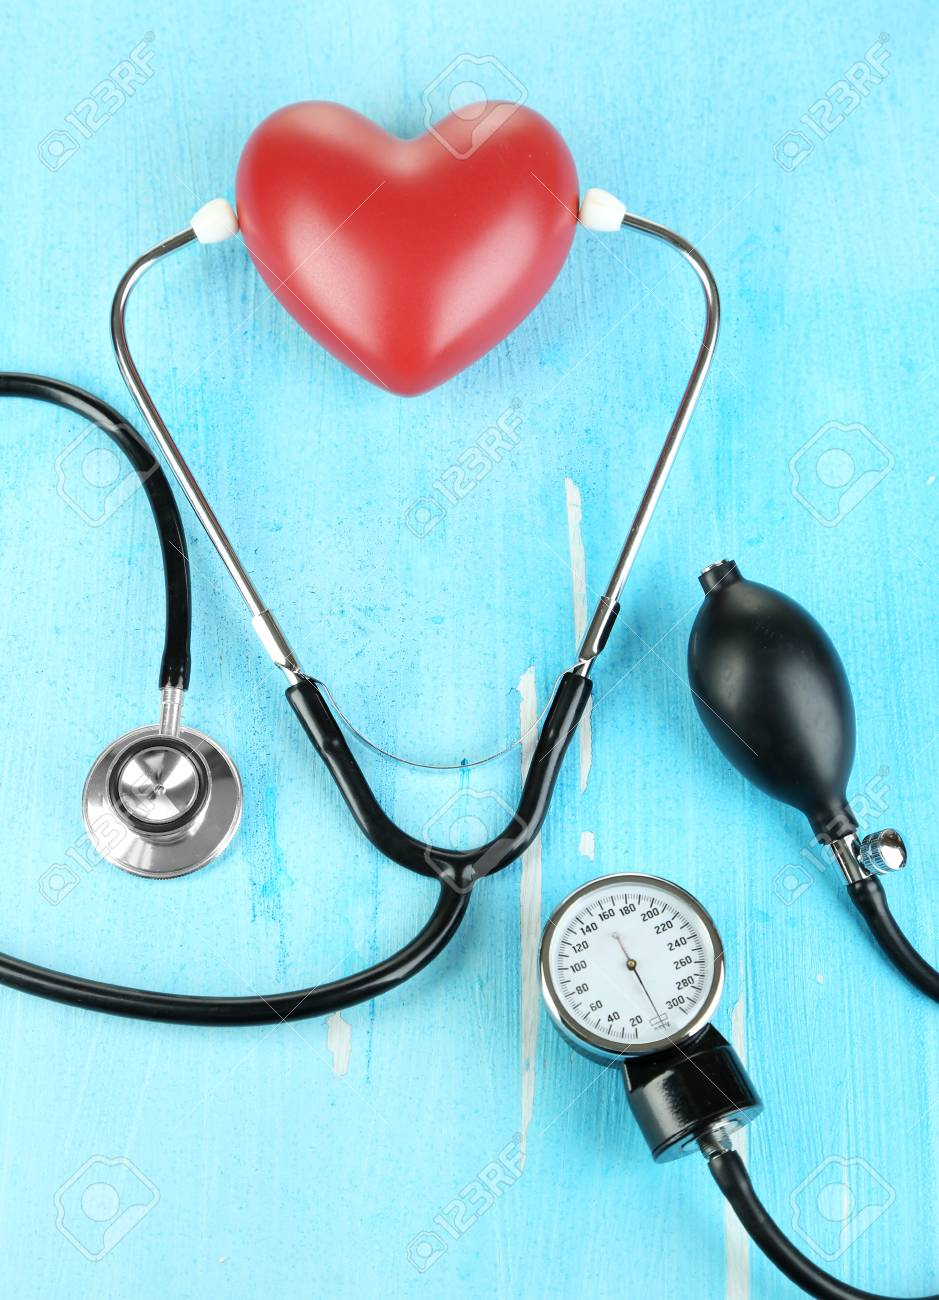 Tonometer, stethoscope and heart on wooden table close-up Stock Photo - 22323214